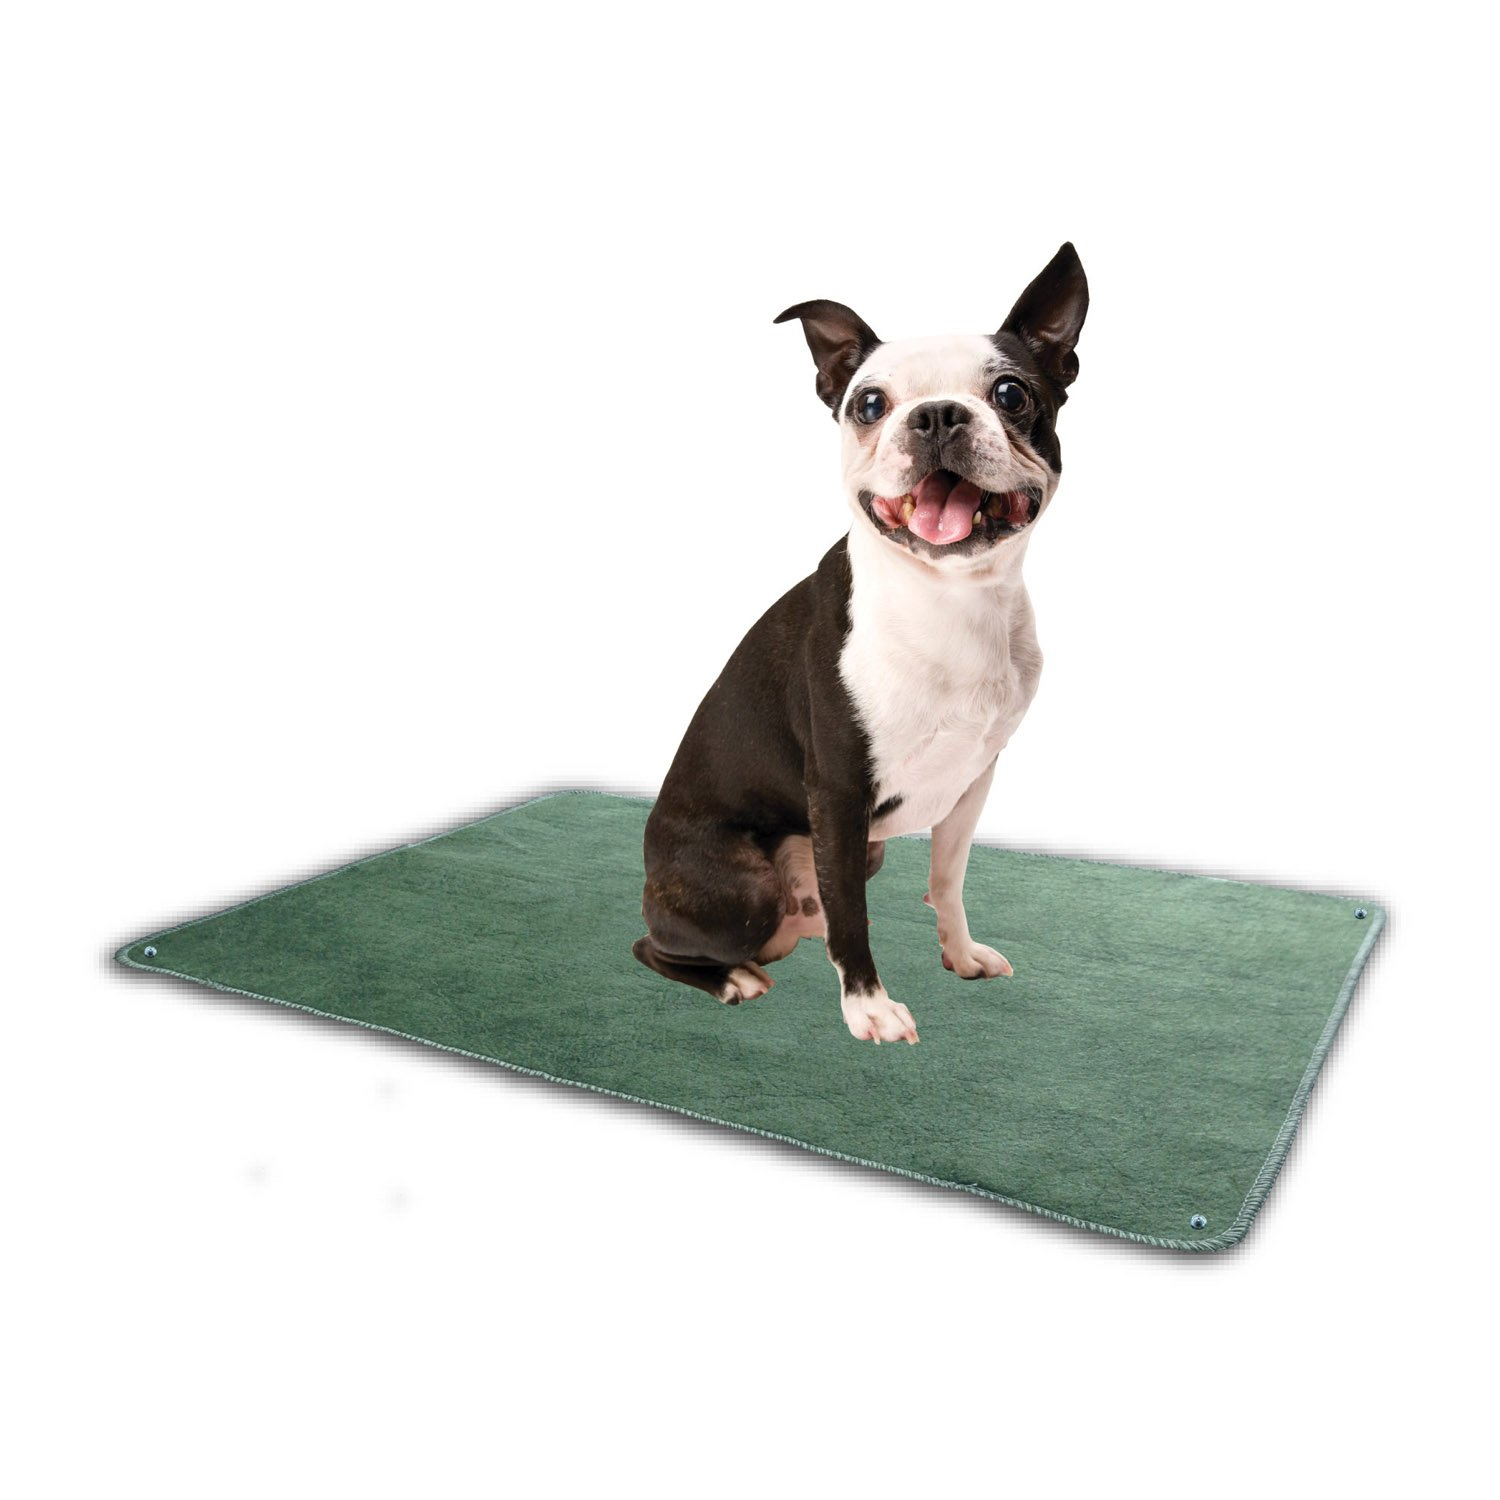 PoochPads Indoor Dog Potty Replacement Pad